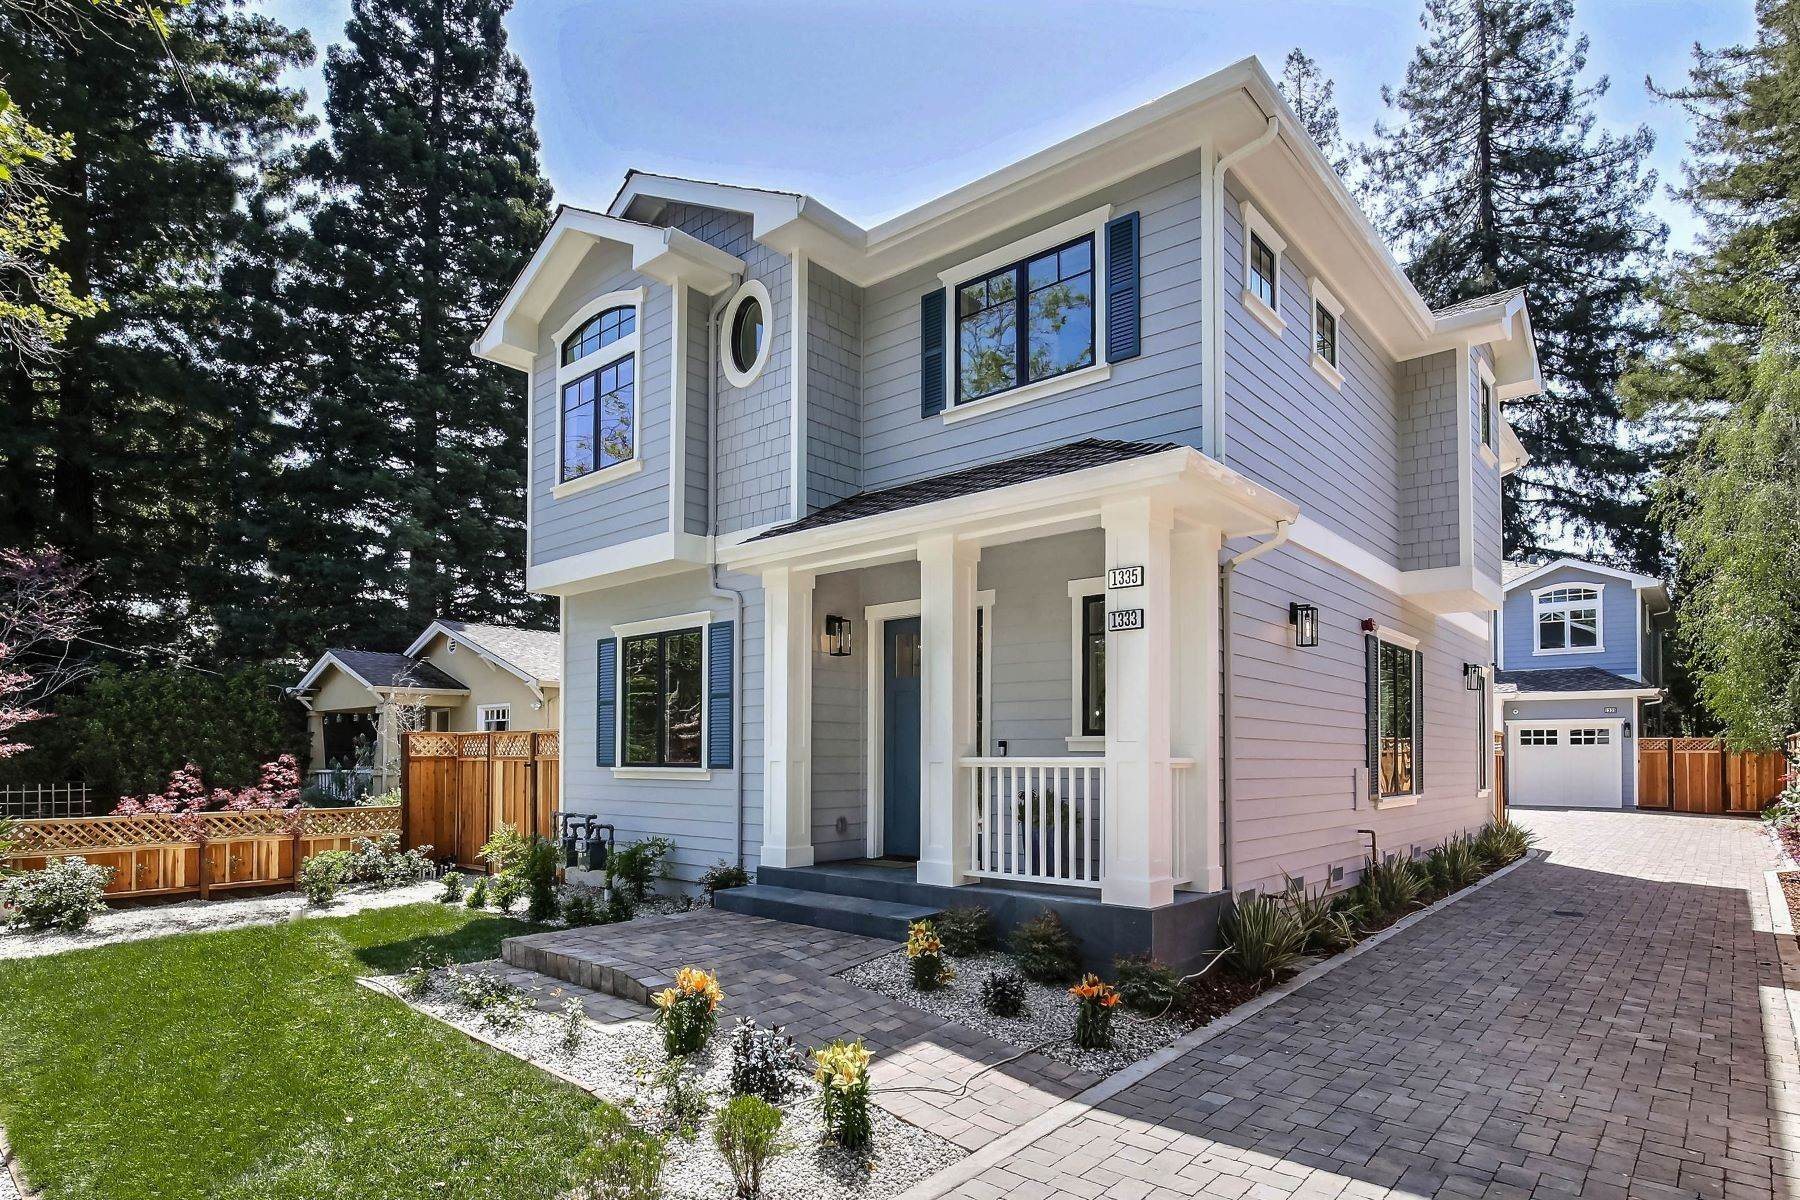 Single Family Homes for Sale at Living in the Heart of Menlo Park 1333 Laurel Street Menlo Park, California 94025 United States